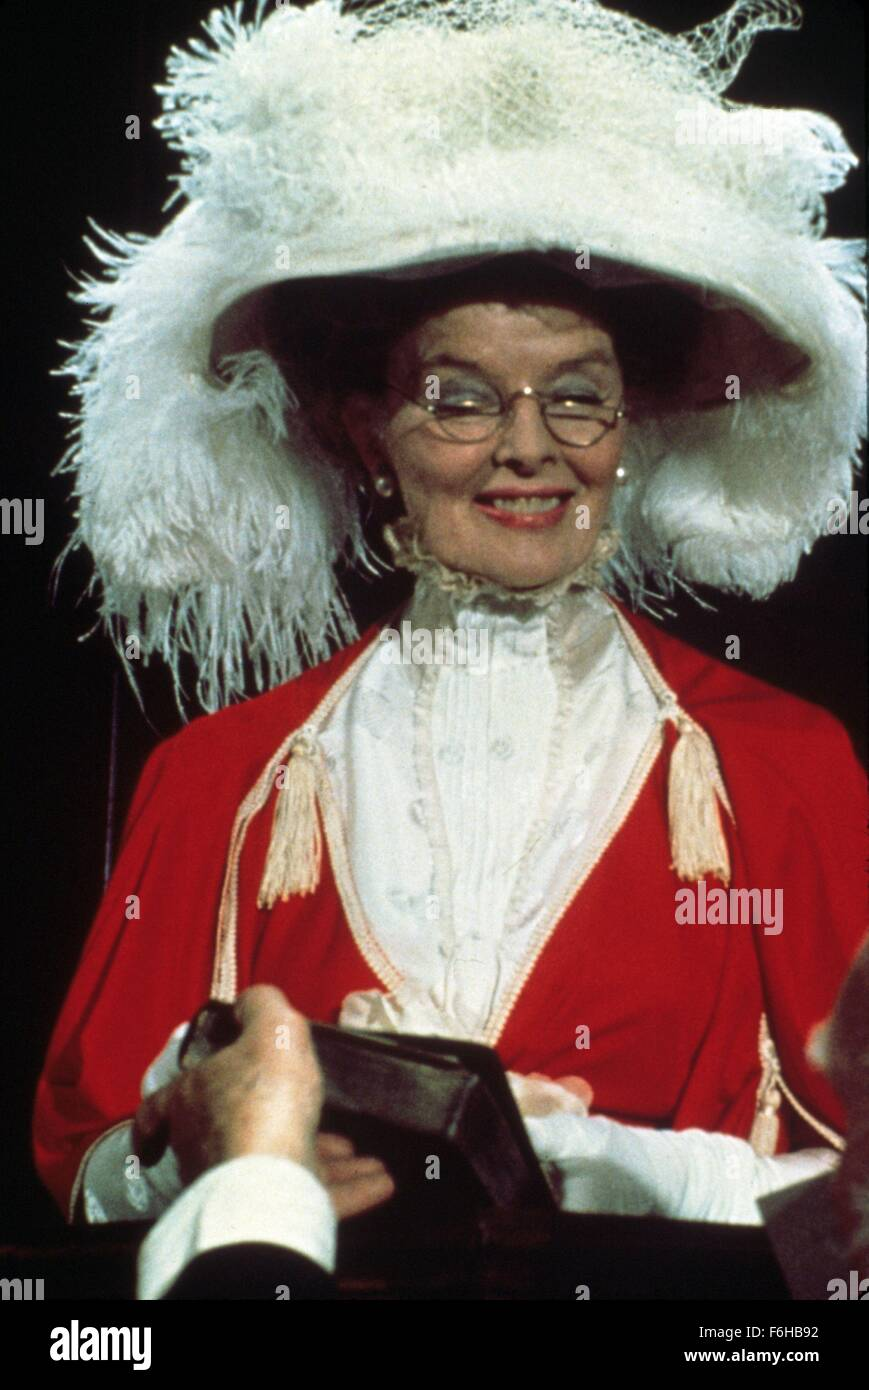 1975, Film Title: LOVE AMONG THE RUINS, Director: GEORGE CUKOR, Pictured: COURT, 1975, KATHARINE HEPBURN, GLASSES, - Stock Image